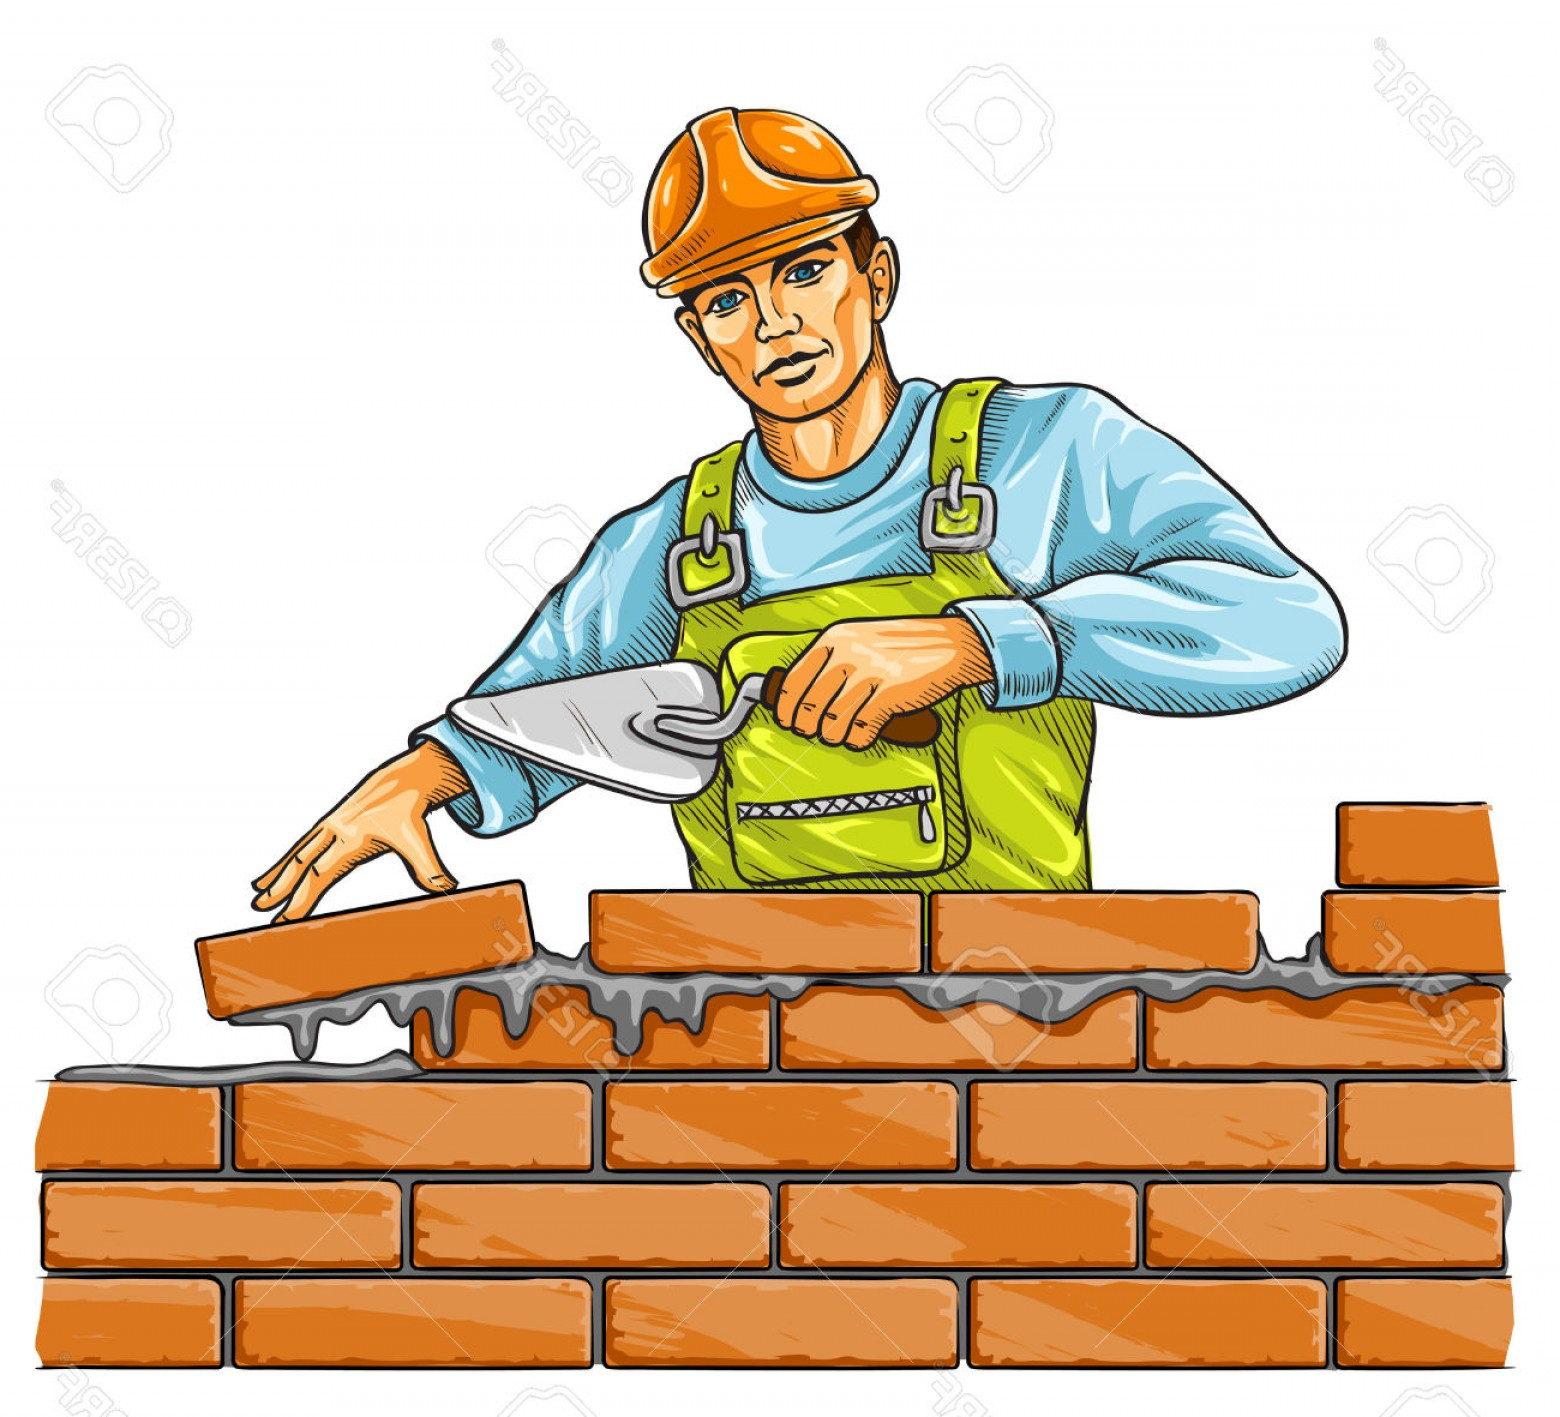 Top Housebuilder Vector Illustration.